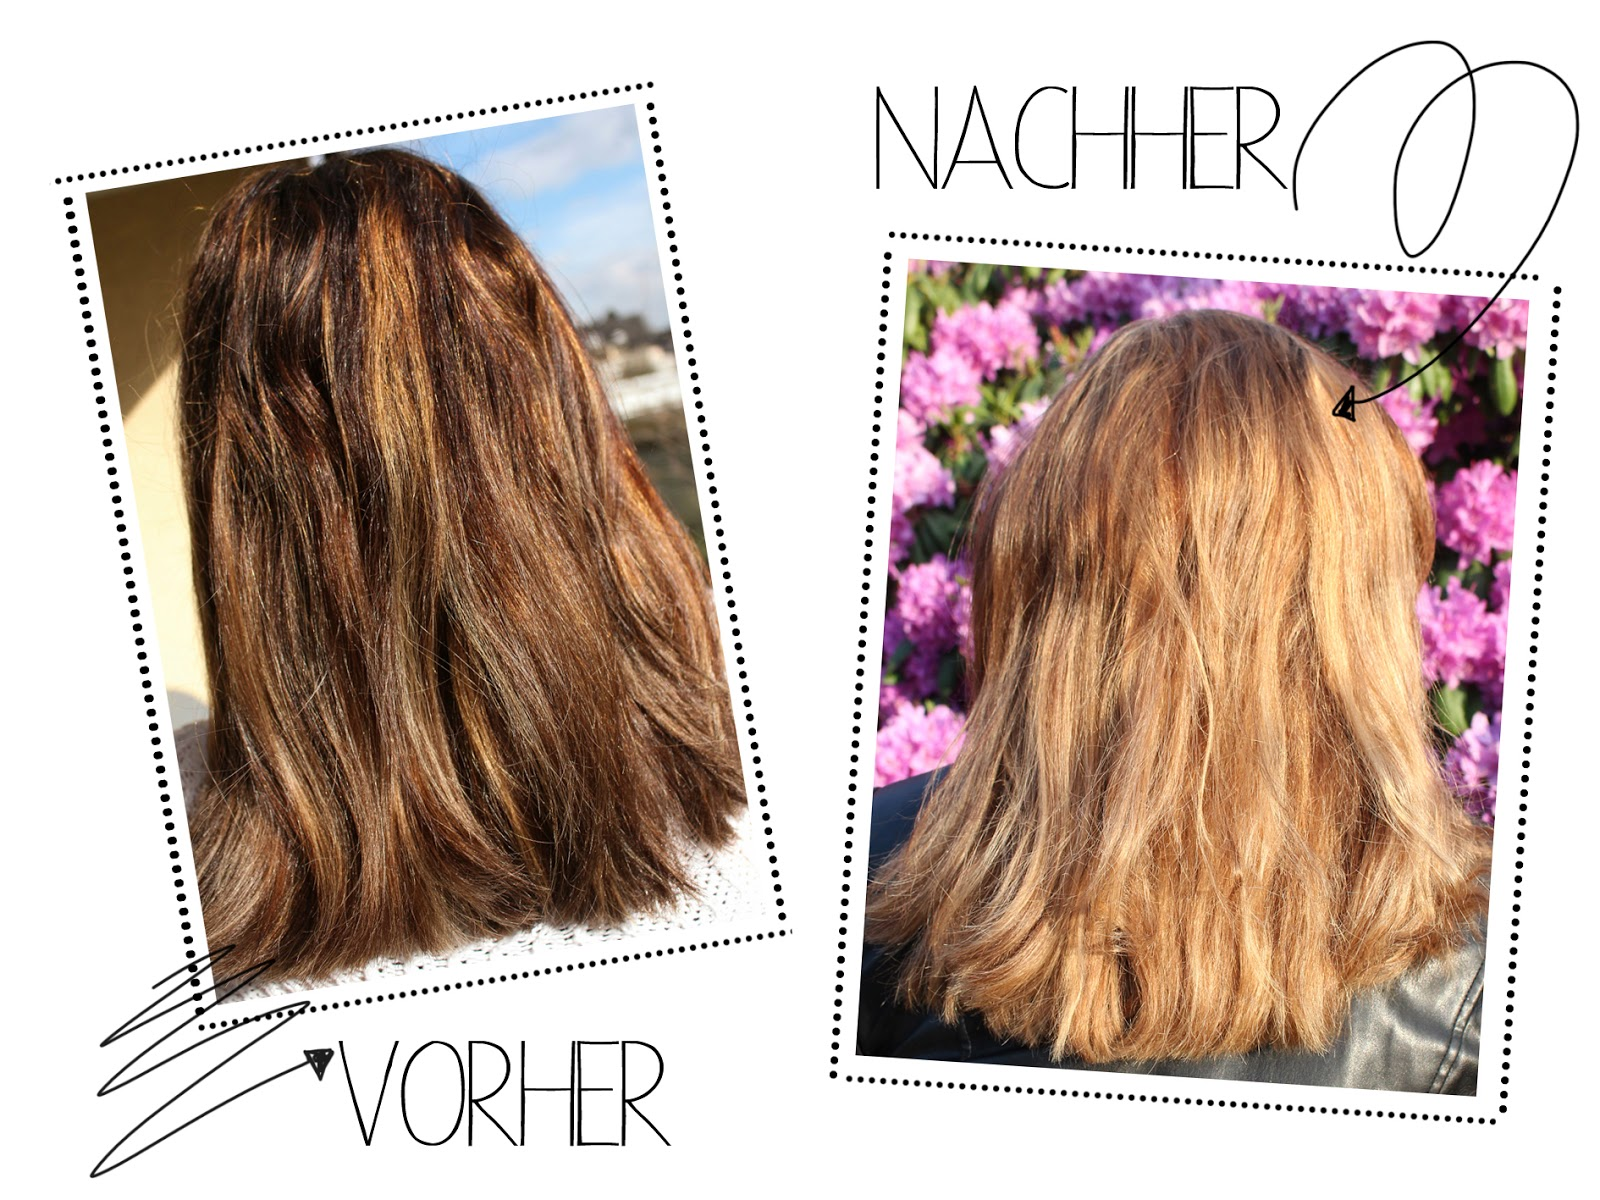 Braune Haare Mit Blonden Strähnen Selber Machen Lifestyle Make Up Skincare Haircare Another Kind Of Beauty Blog